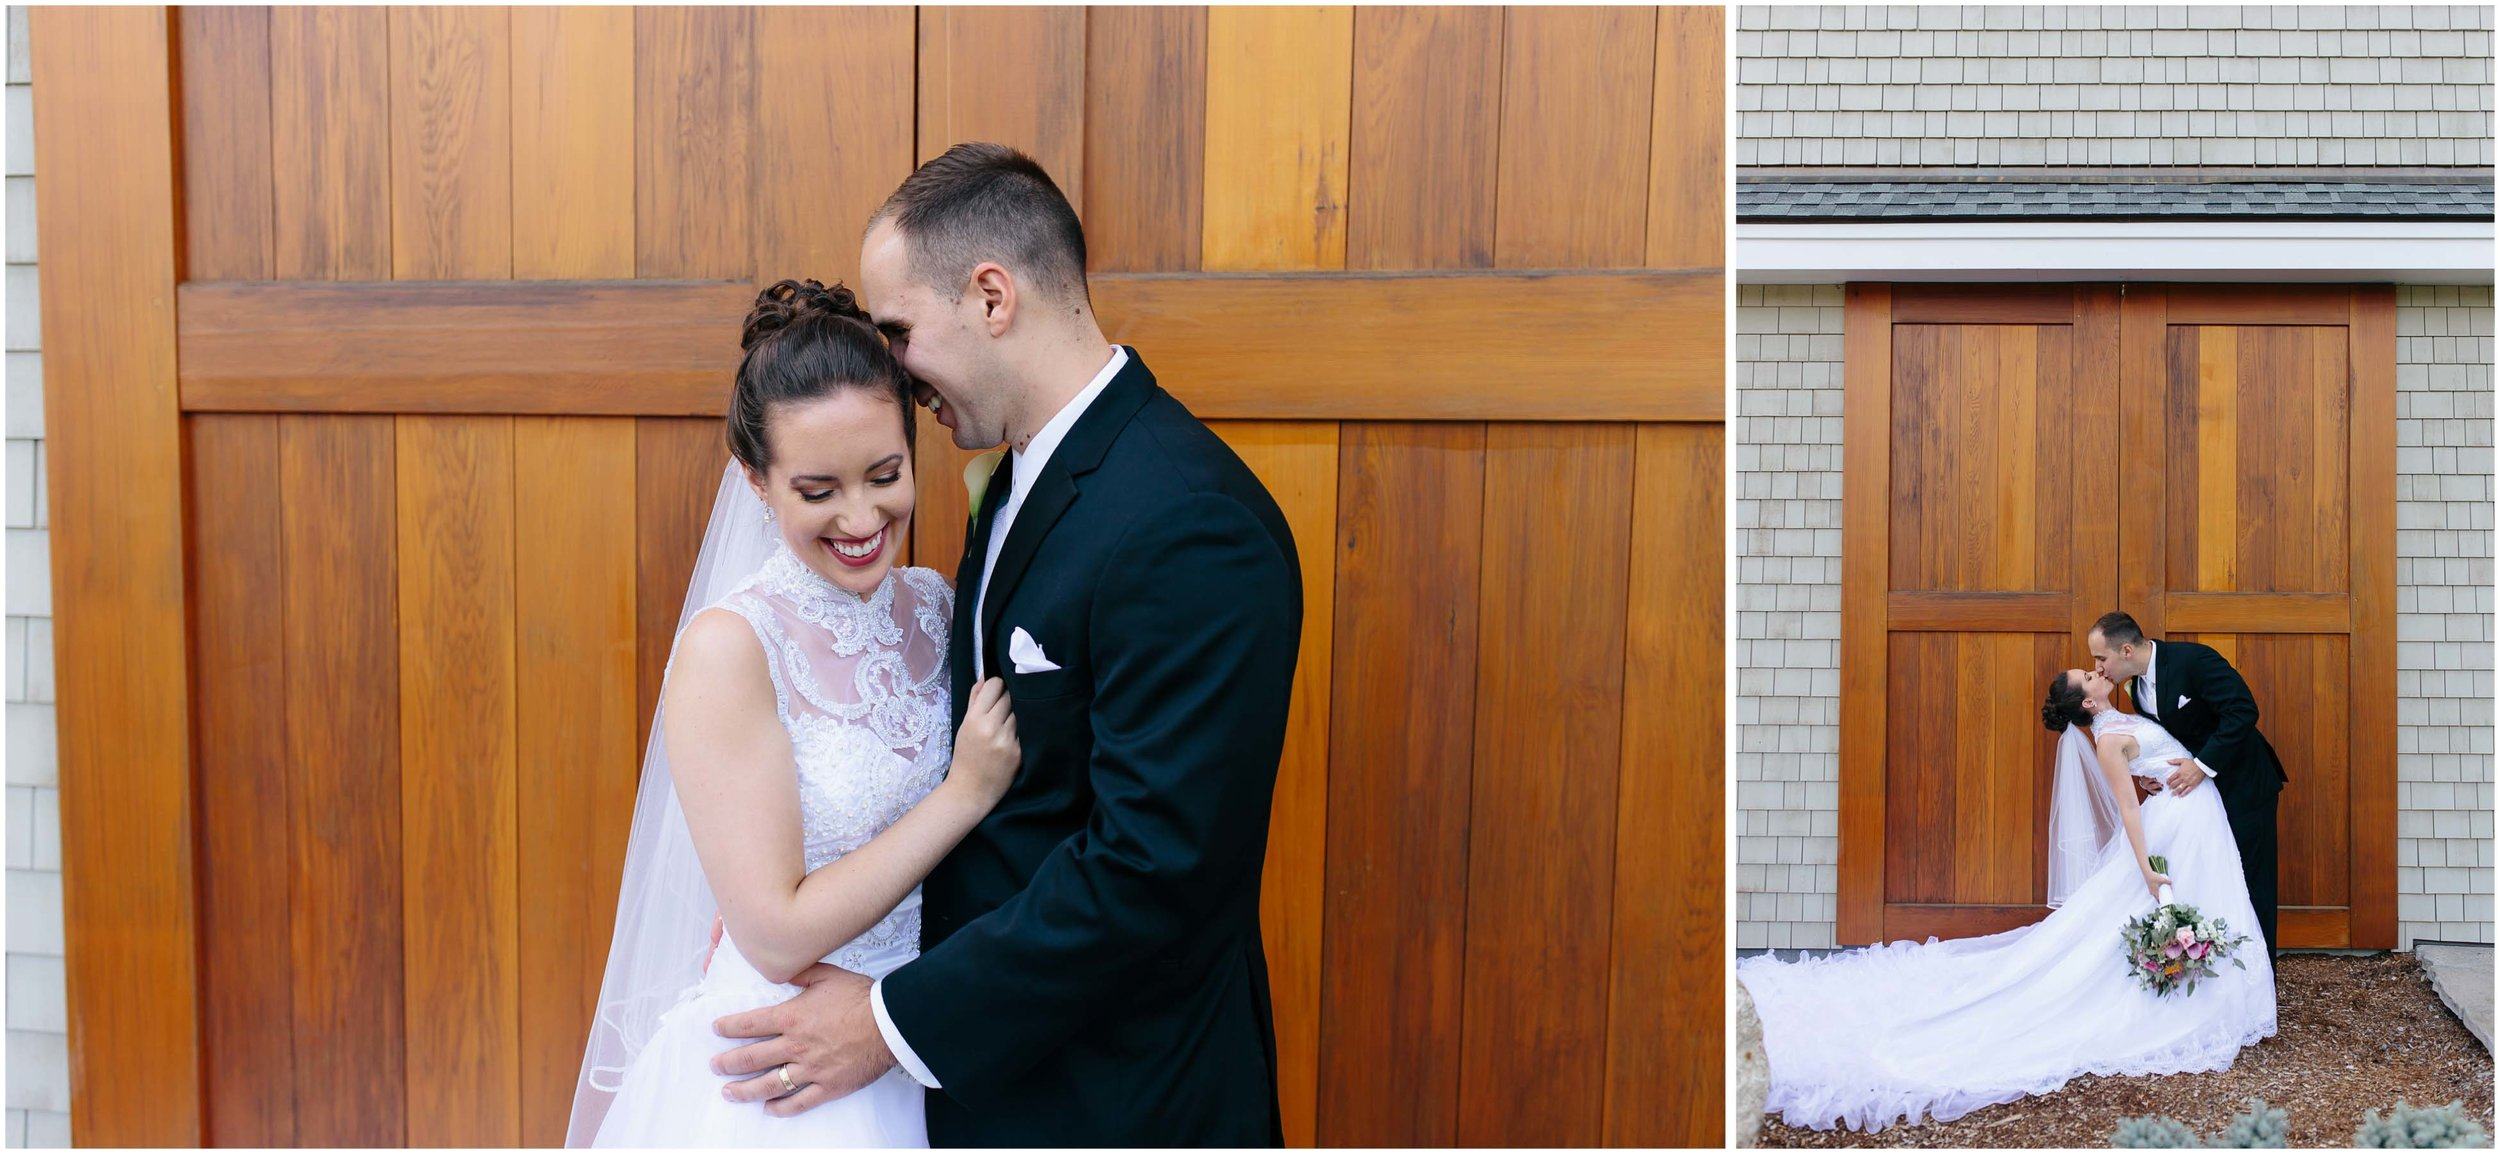 Chic New Hampshire Wedding at Manchester Country Club Bedford - bride and groom laugh and dip kiss